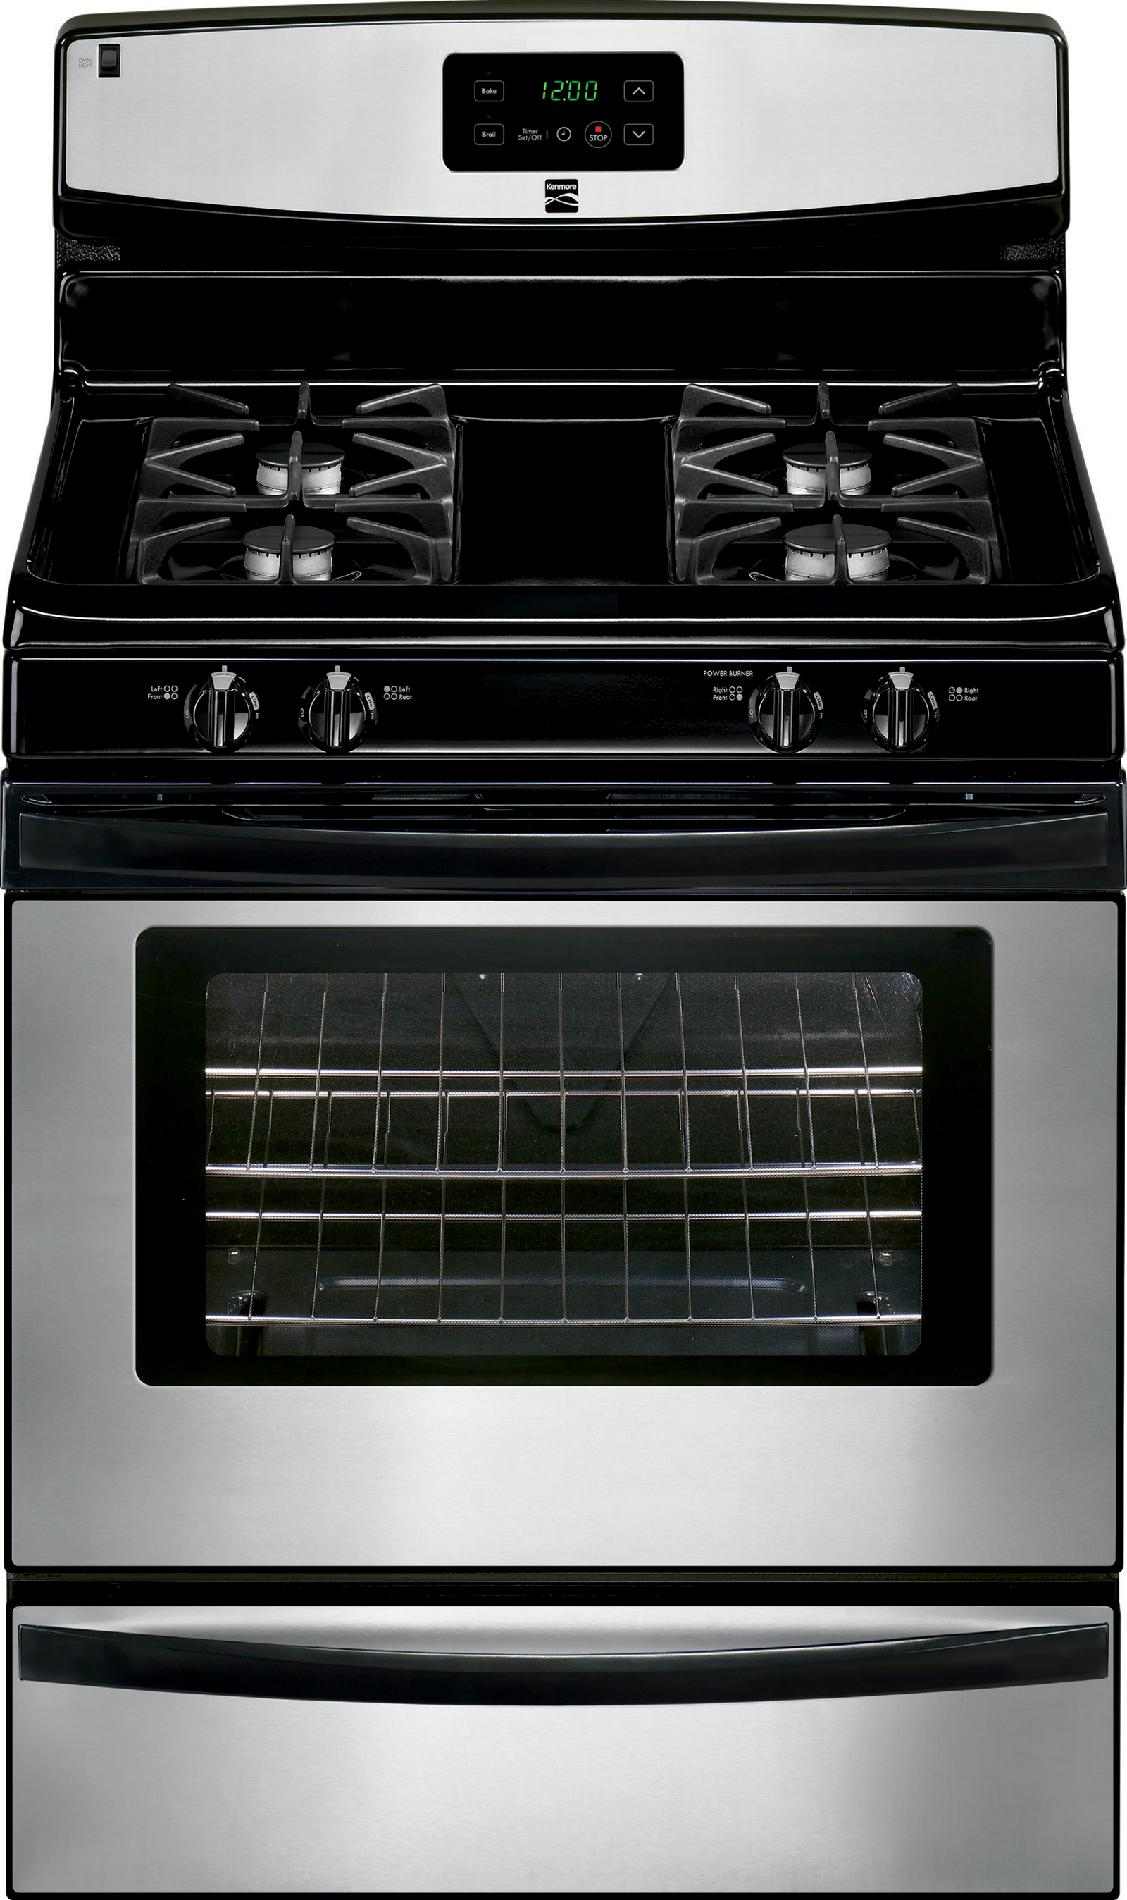 Kenmore 73233 42 cu ft Gas Range with Broil  Serve